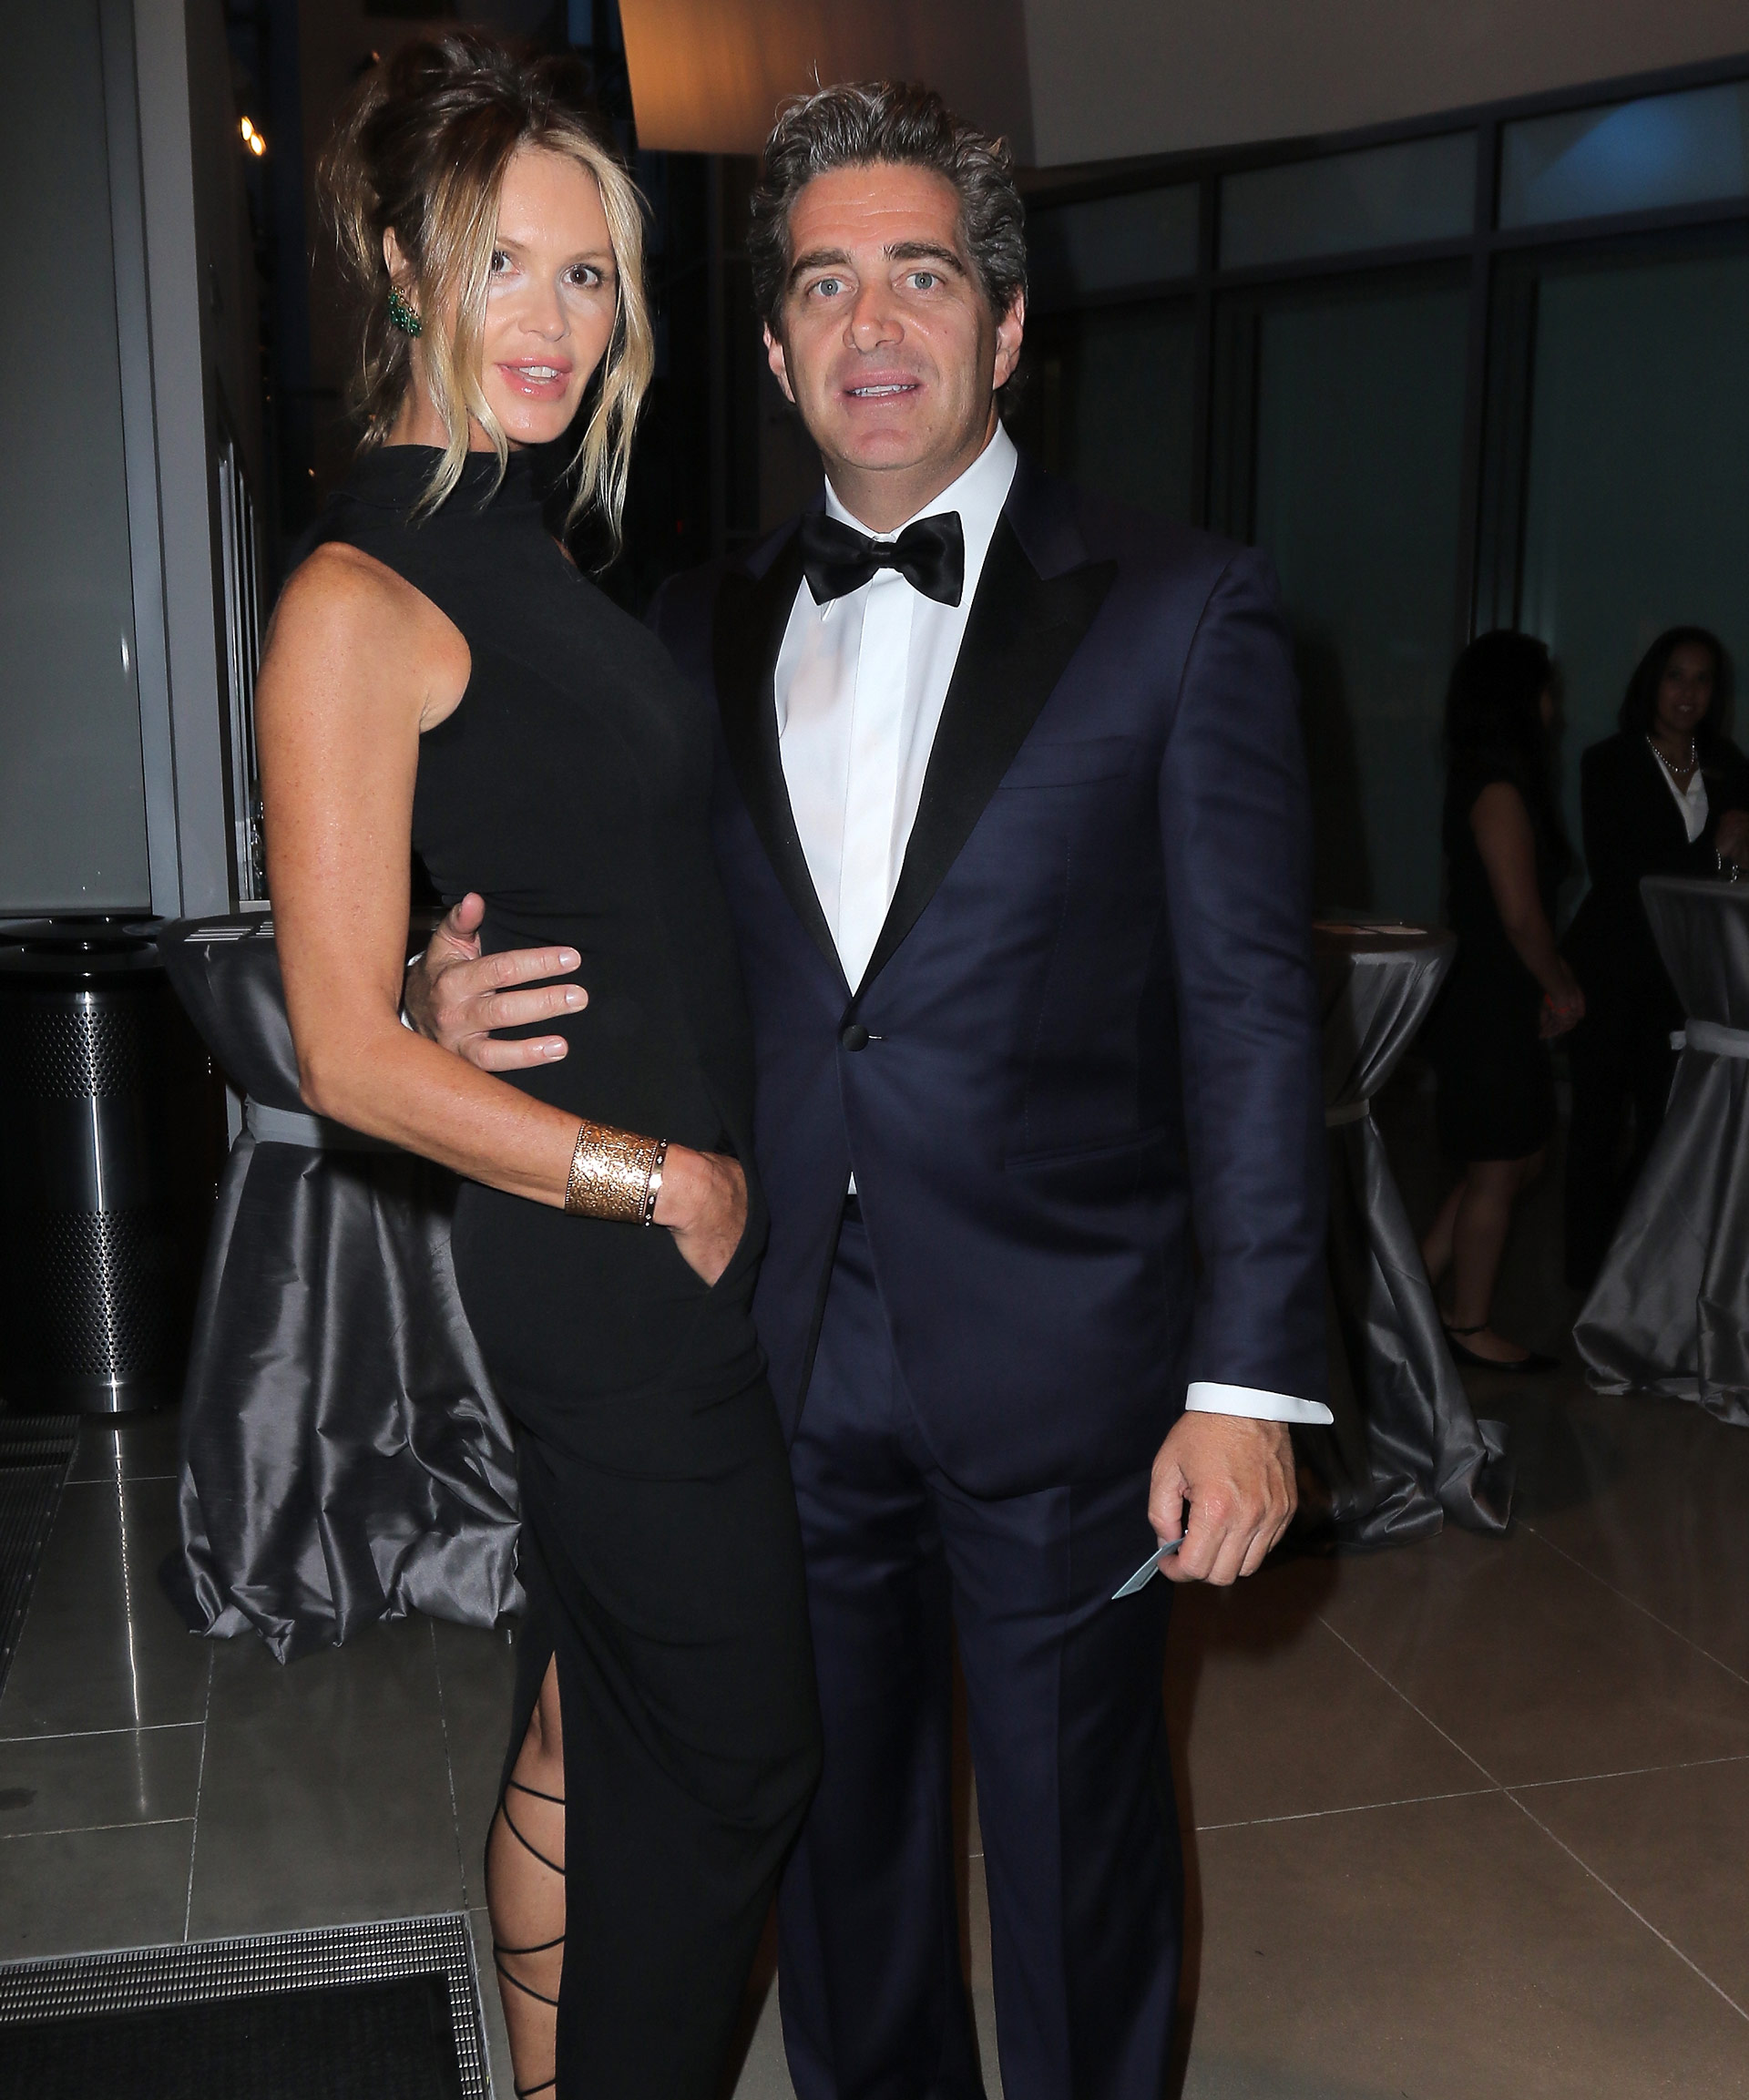 It's over for Elle Macpherson and her billionaire husband Jeff Soffer